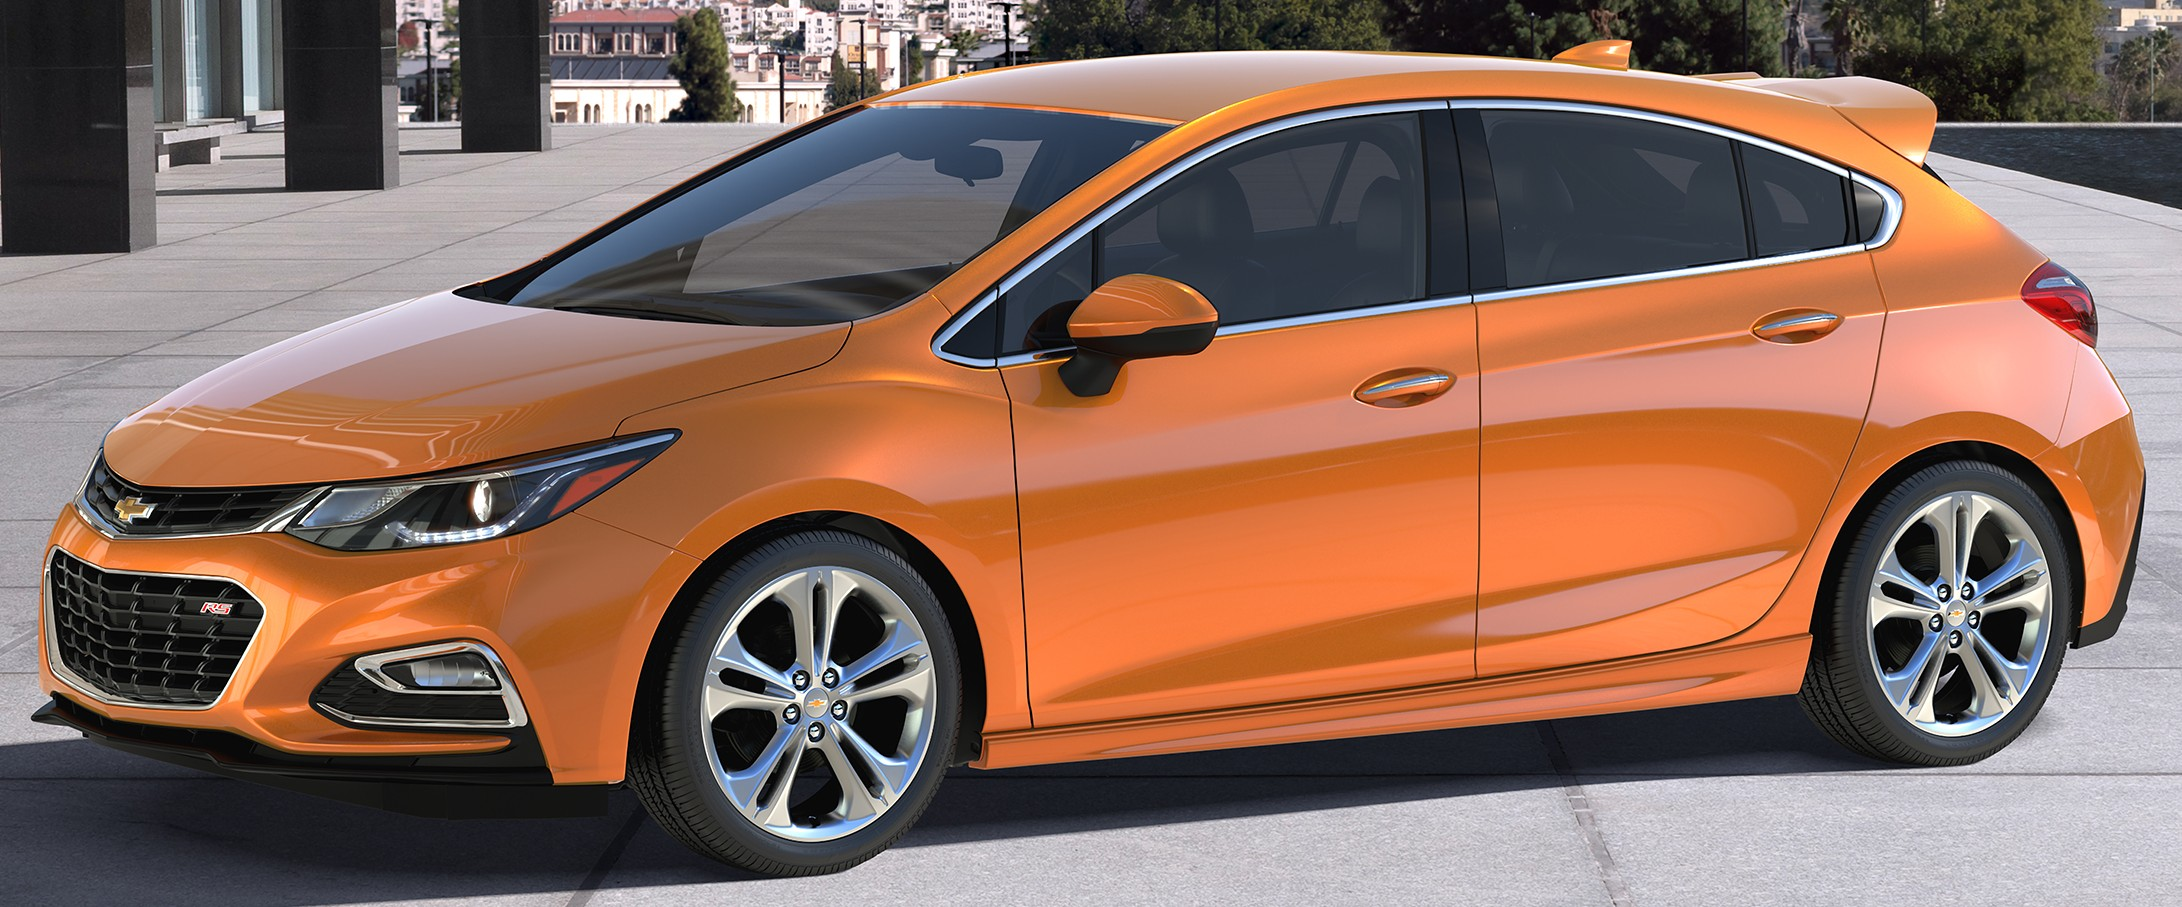 2017 Chevrolet Cruze hatchback unveiled in the US Paul Tan ...